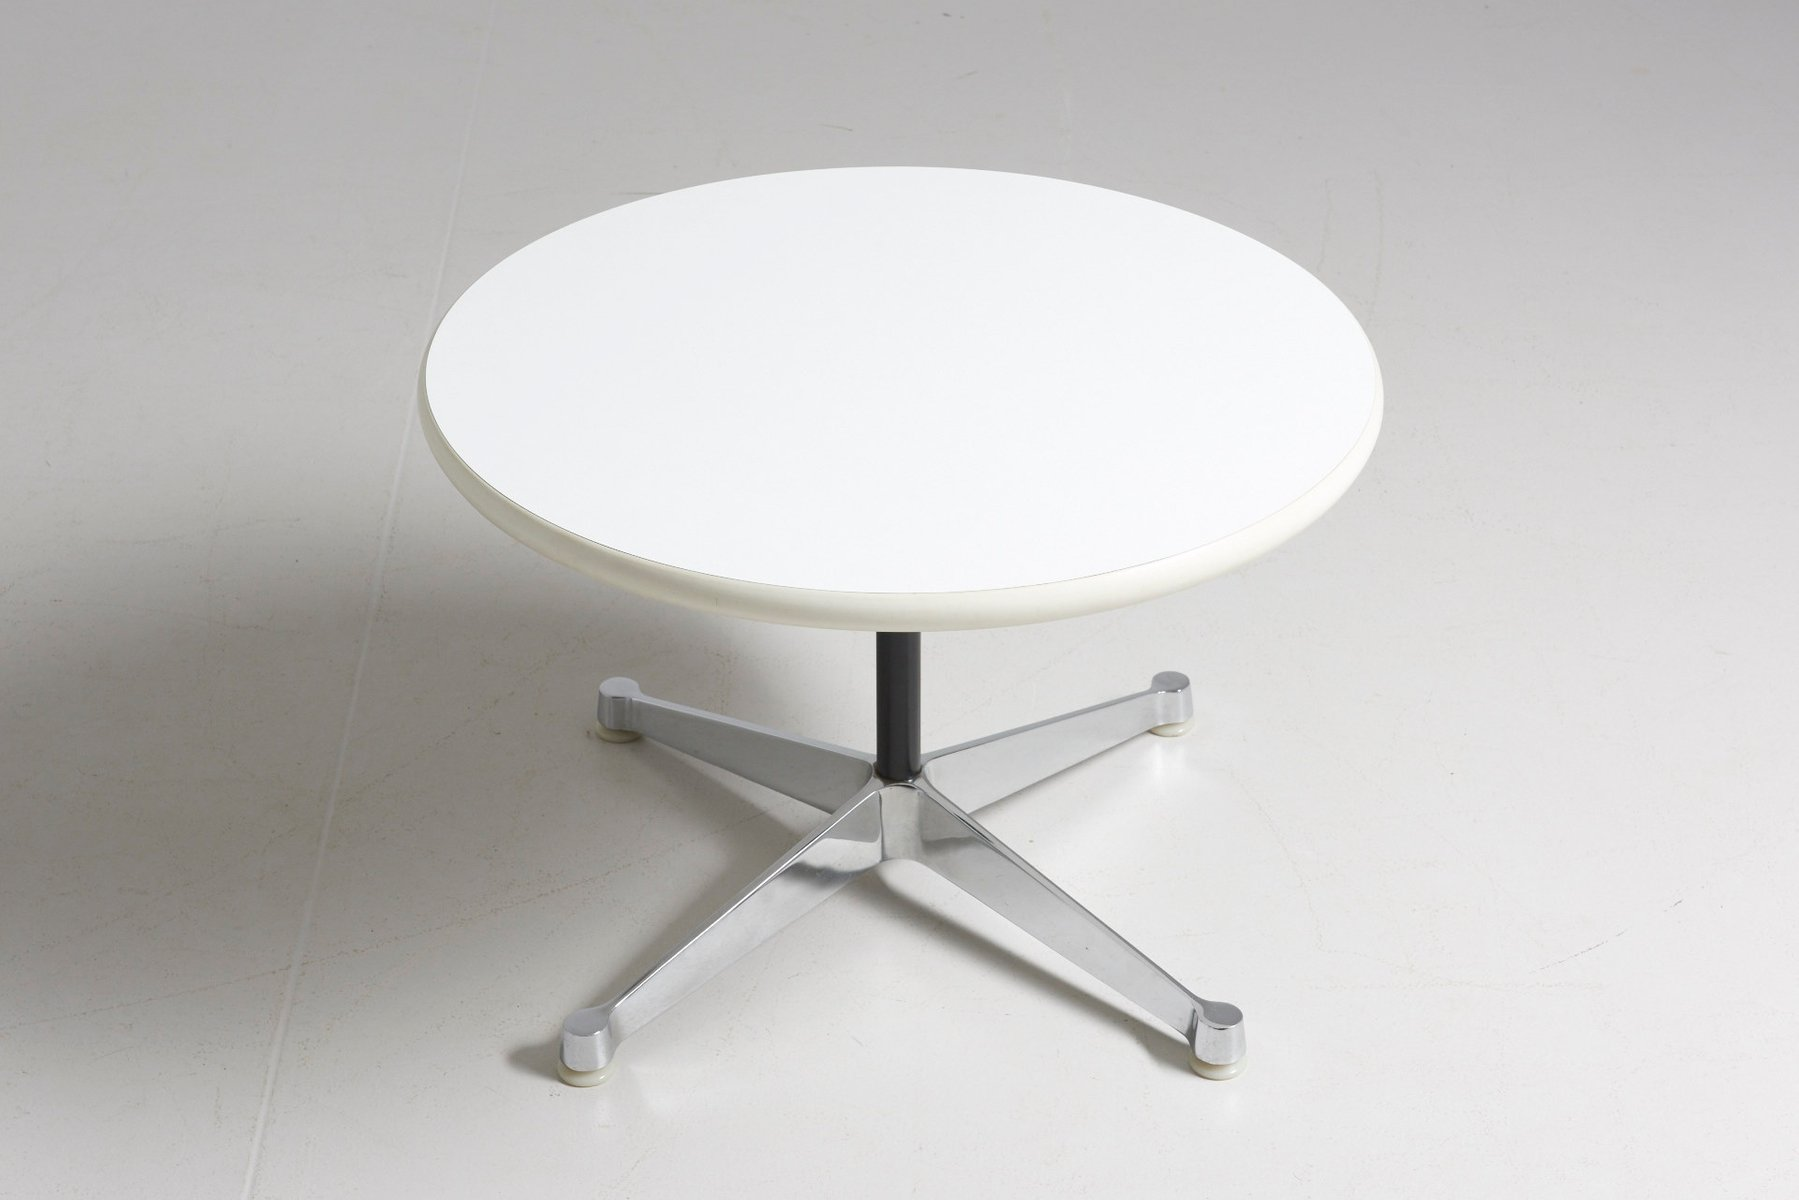 Mid Century Round Side Table by Charles & Ray Eames for Herman